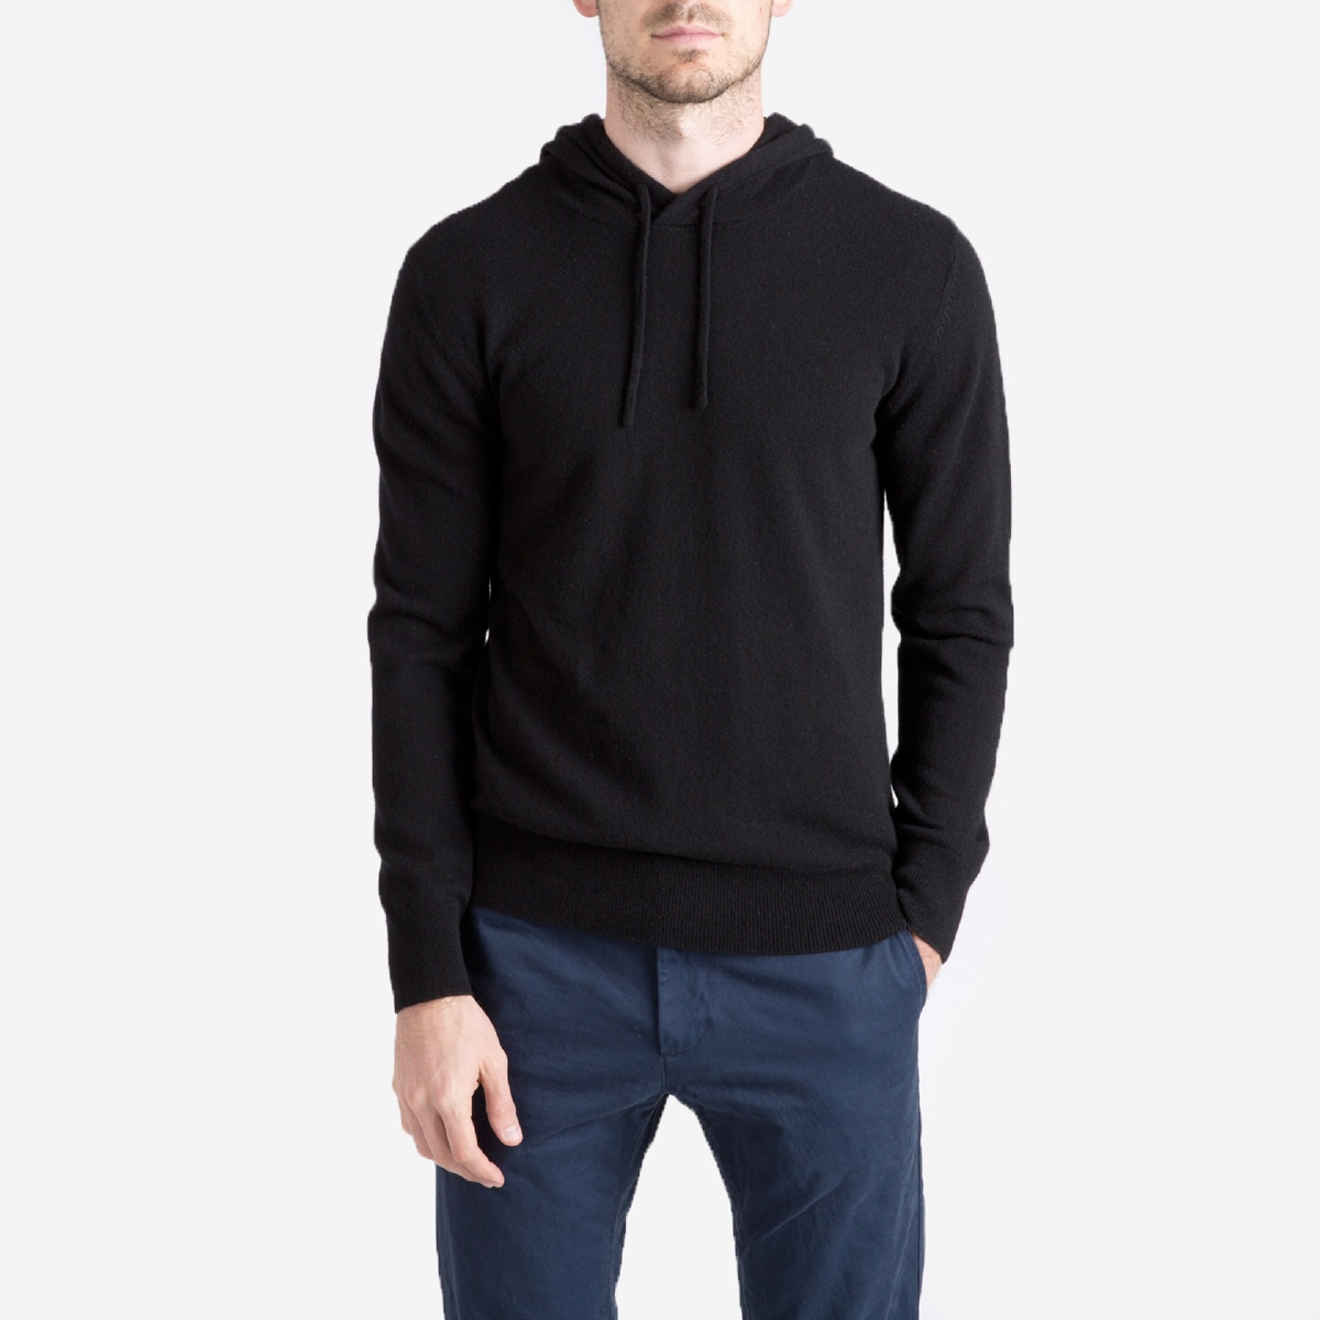 Everlane Cashmere Hoodie (Courtesy: Everlane)